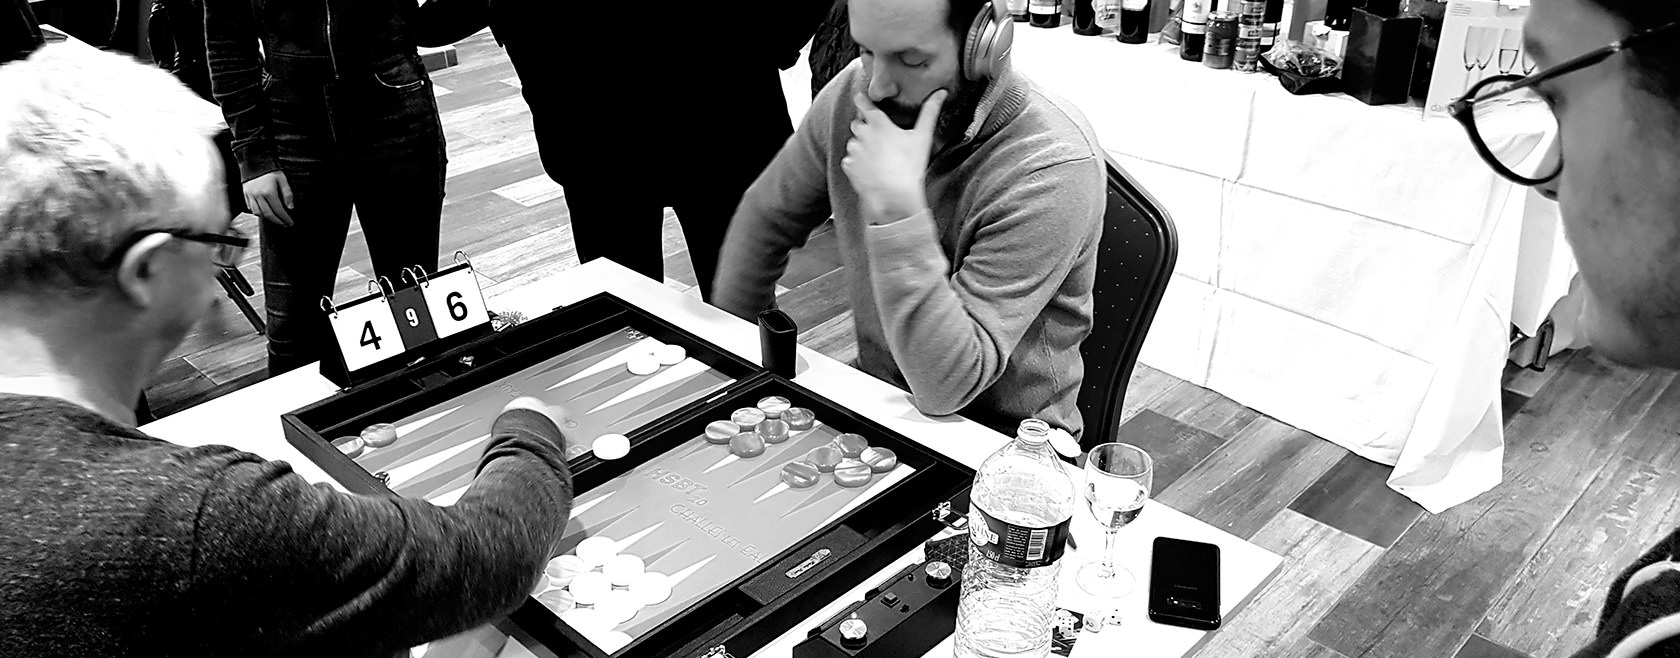 Cours de Backgammon & Coaching